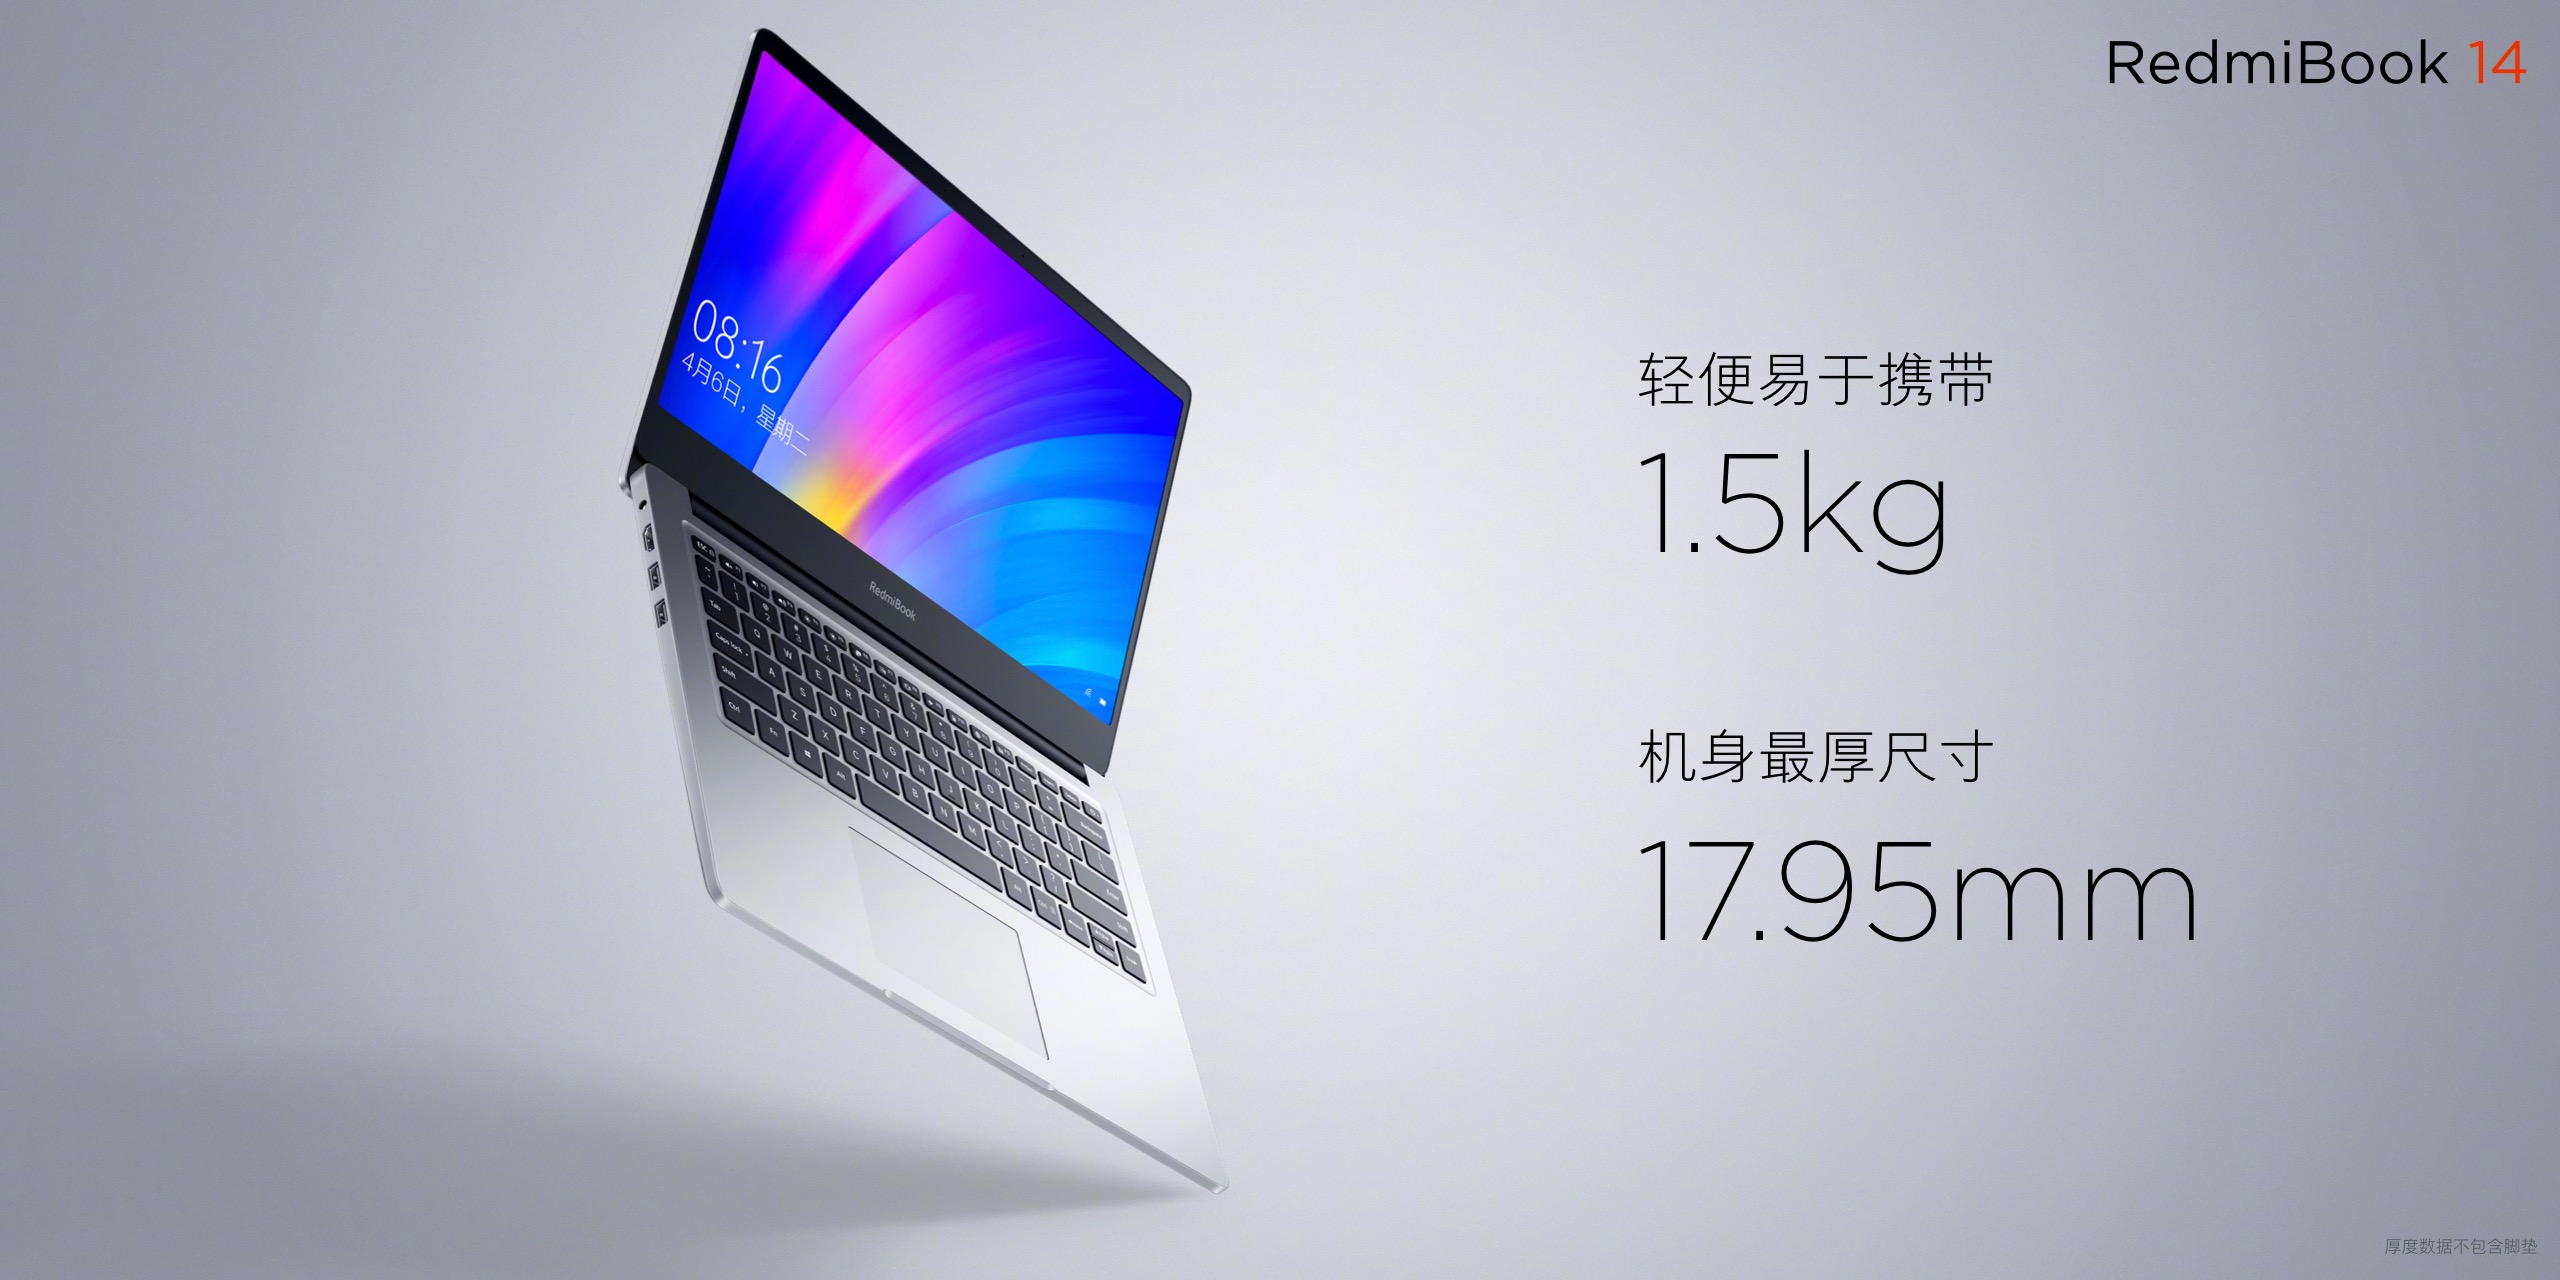 RedmiBook 14, features, specifications and price. Xiaomi Addicted News